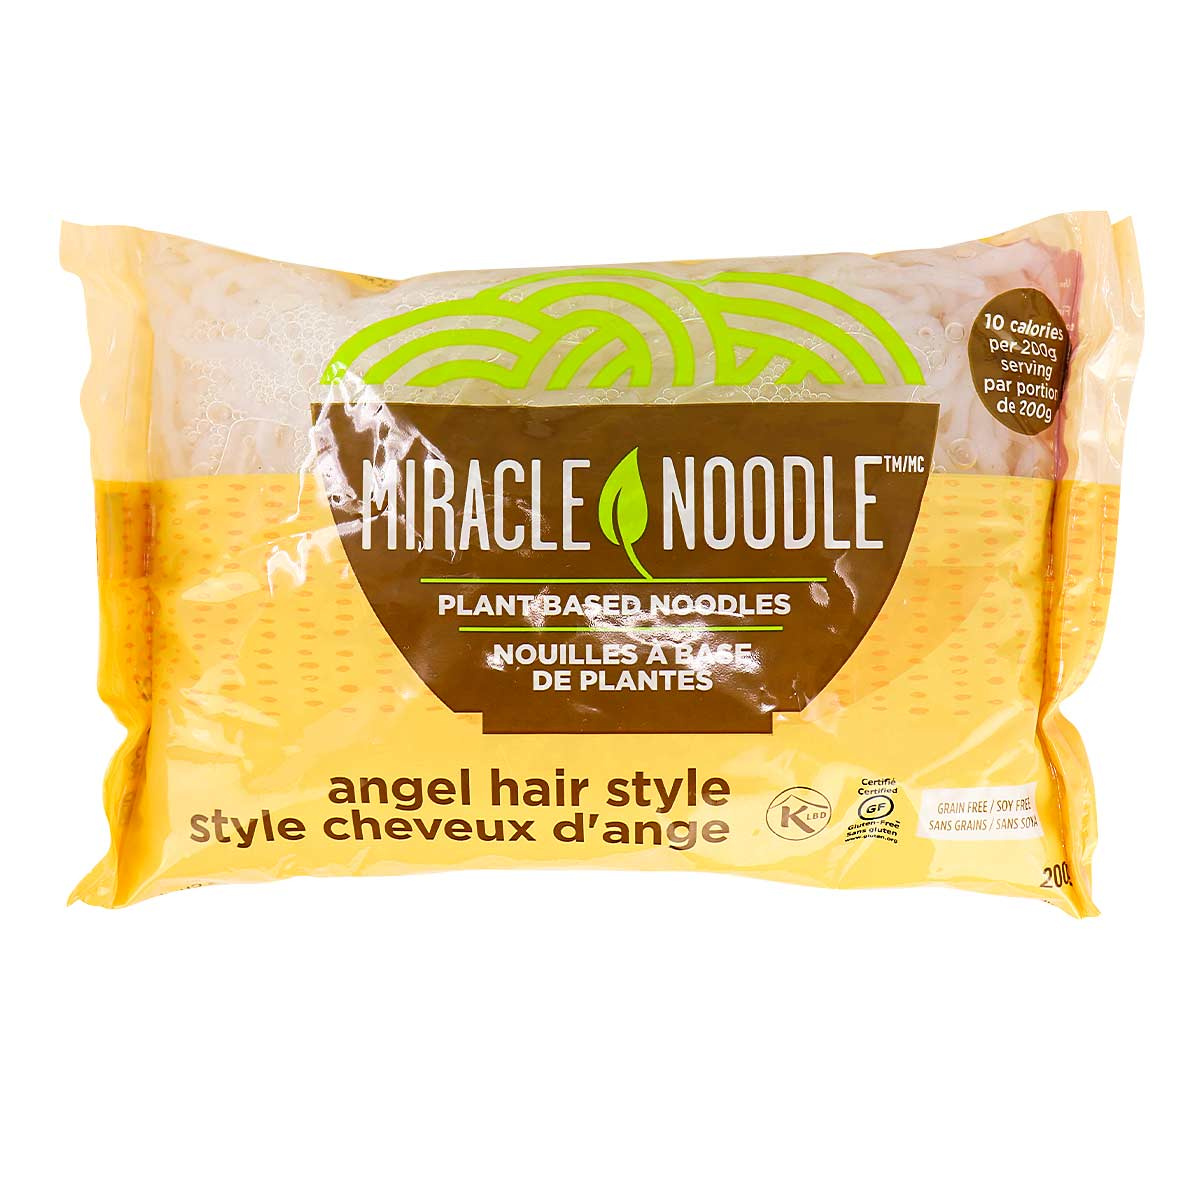 Buy Miracle Noodle Angel Hair Shirataki Noodle Online Canada Low Carb Products Delivery Naturamarket Ca